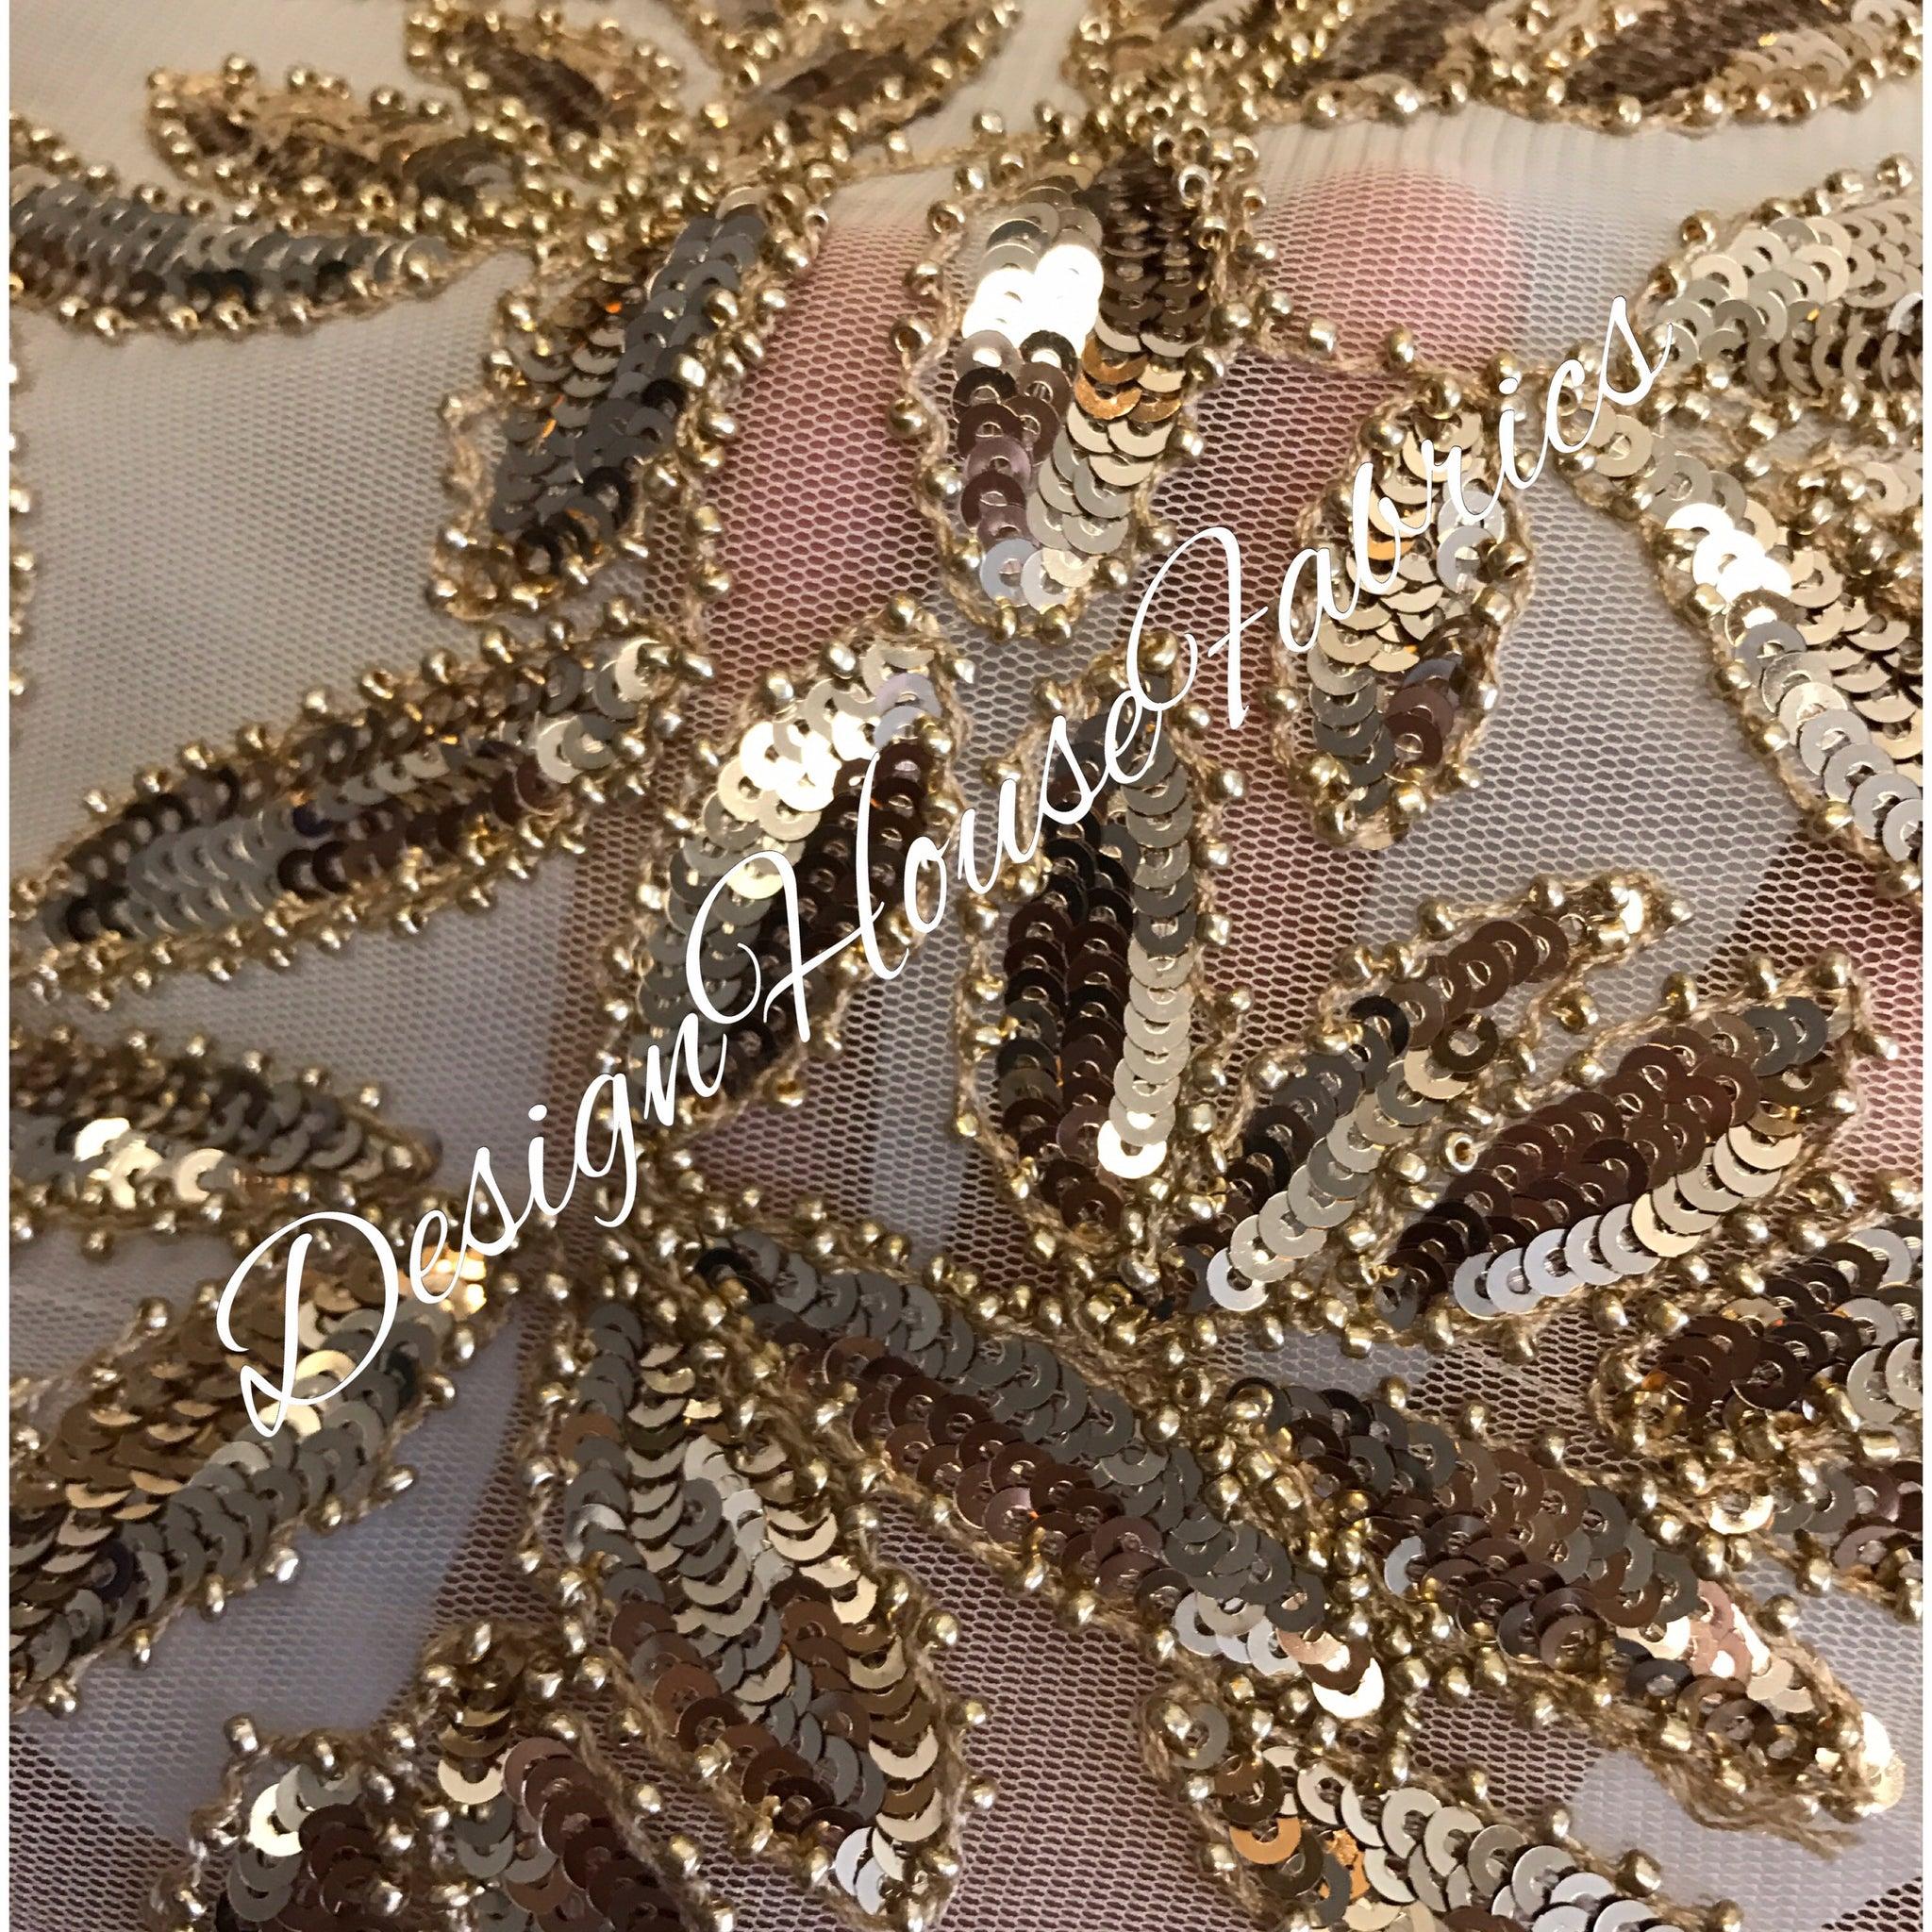 Beaded lace 9 - Gold on Gold